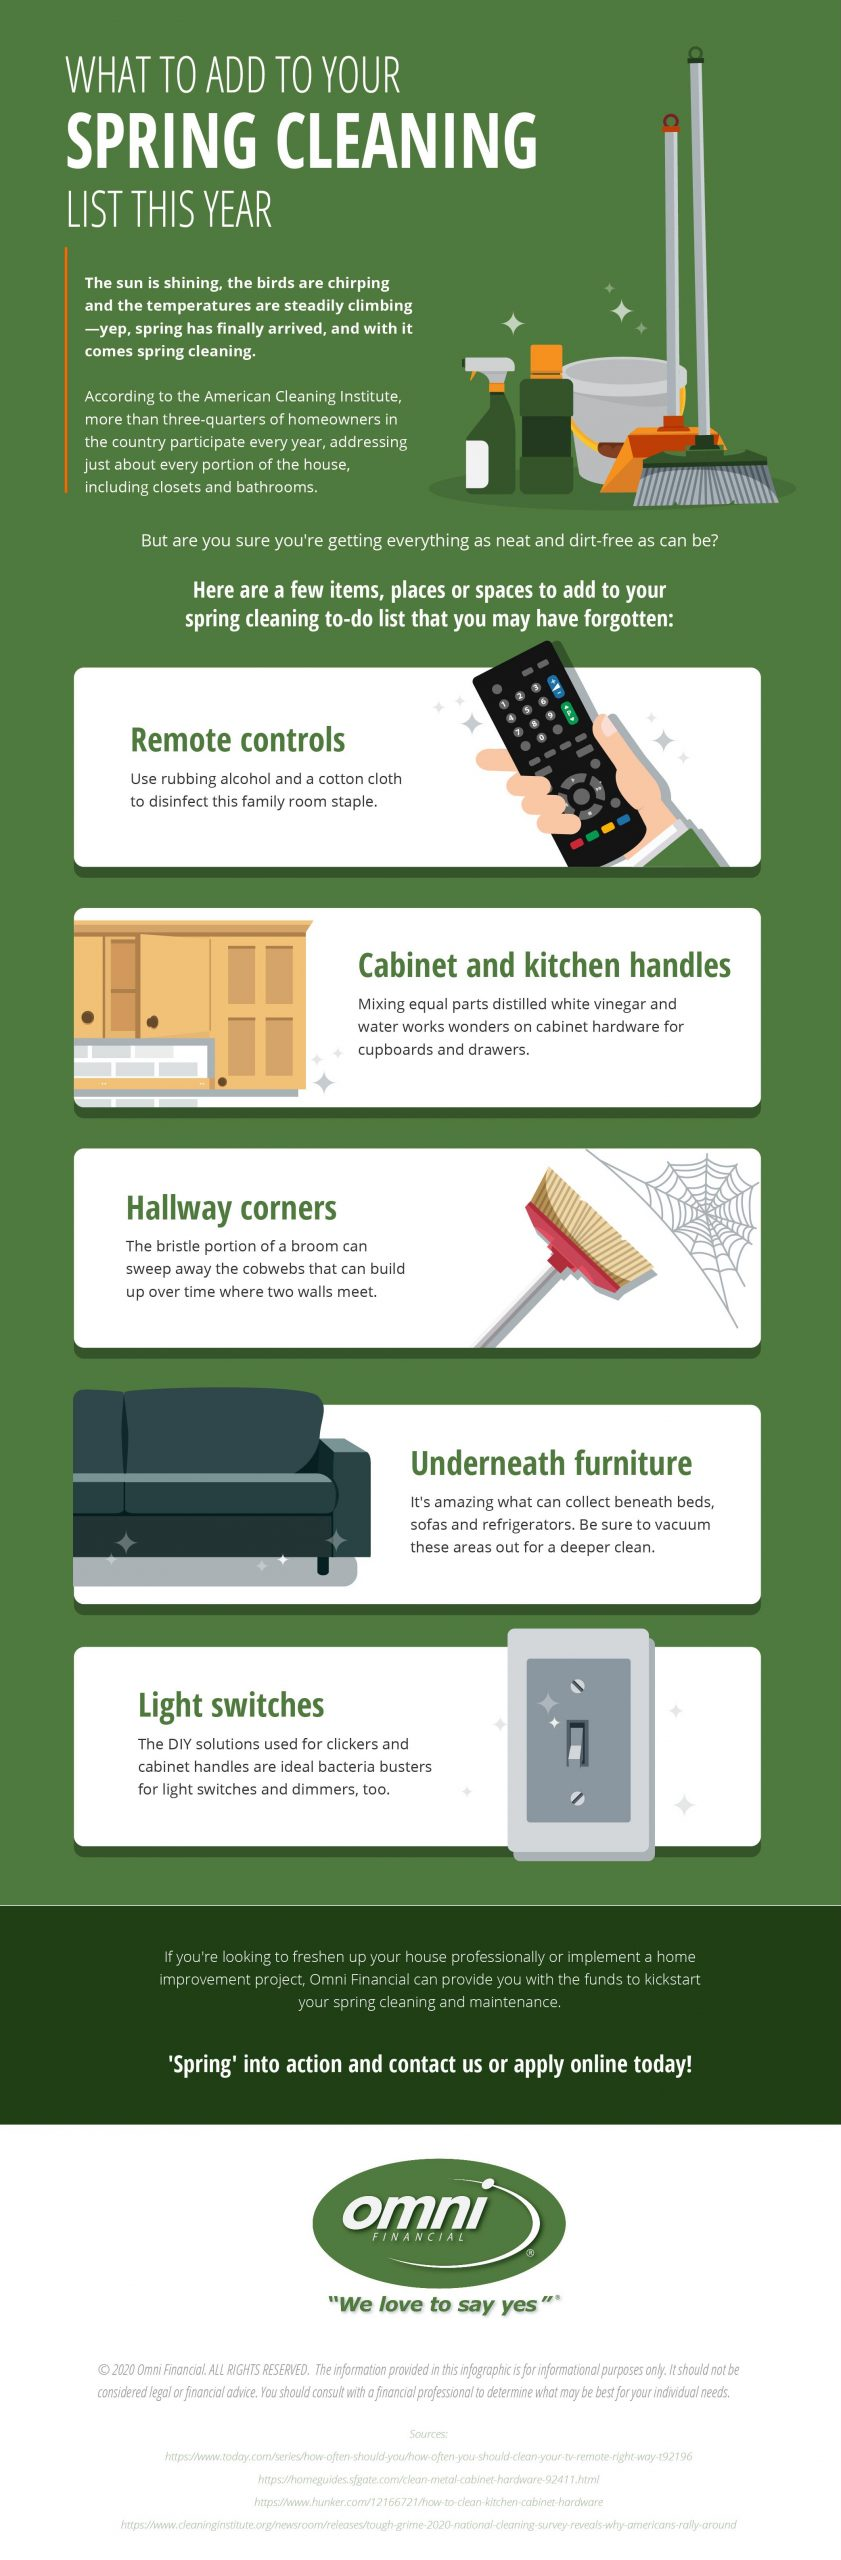 List of spring cleaning tips for common areas of house